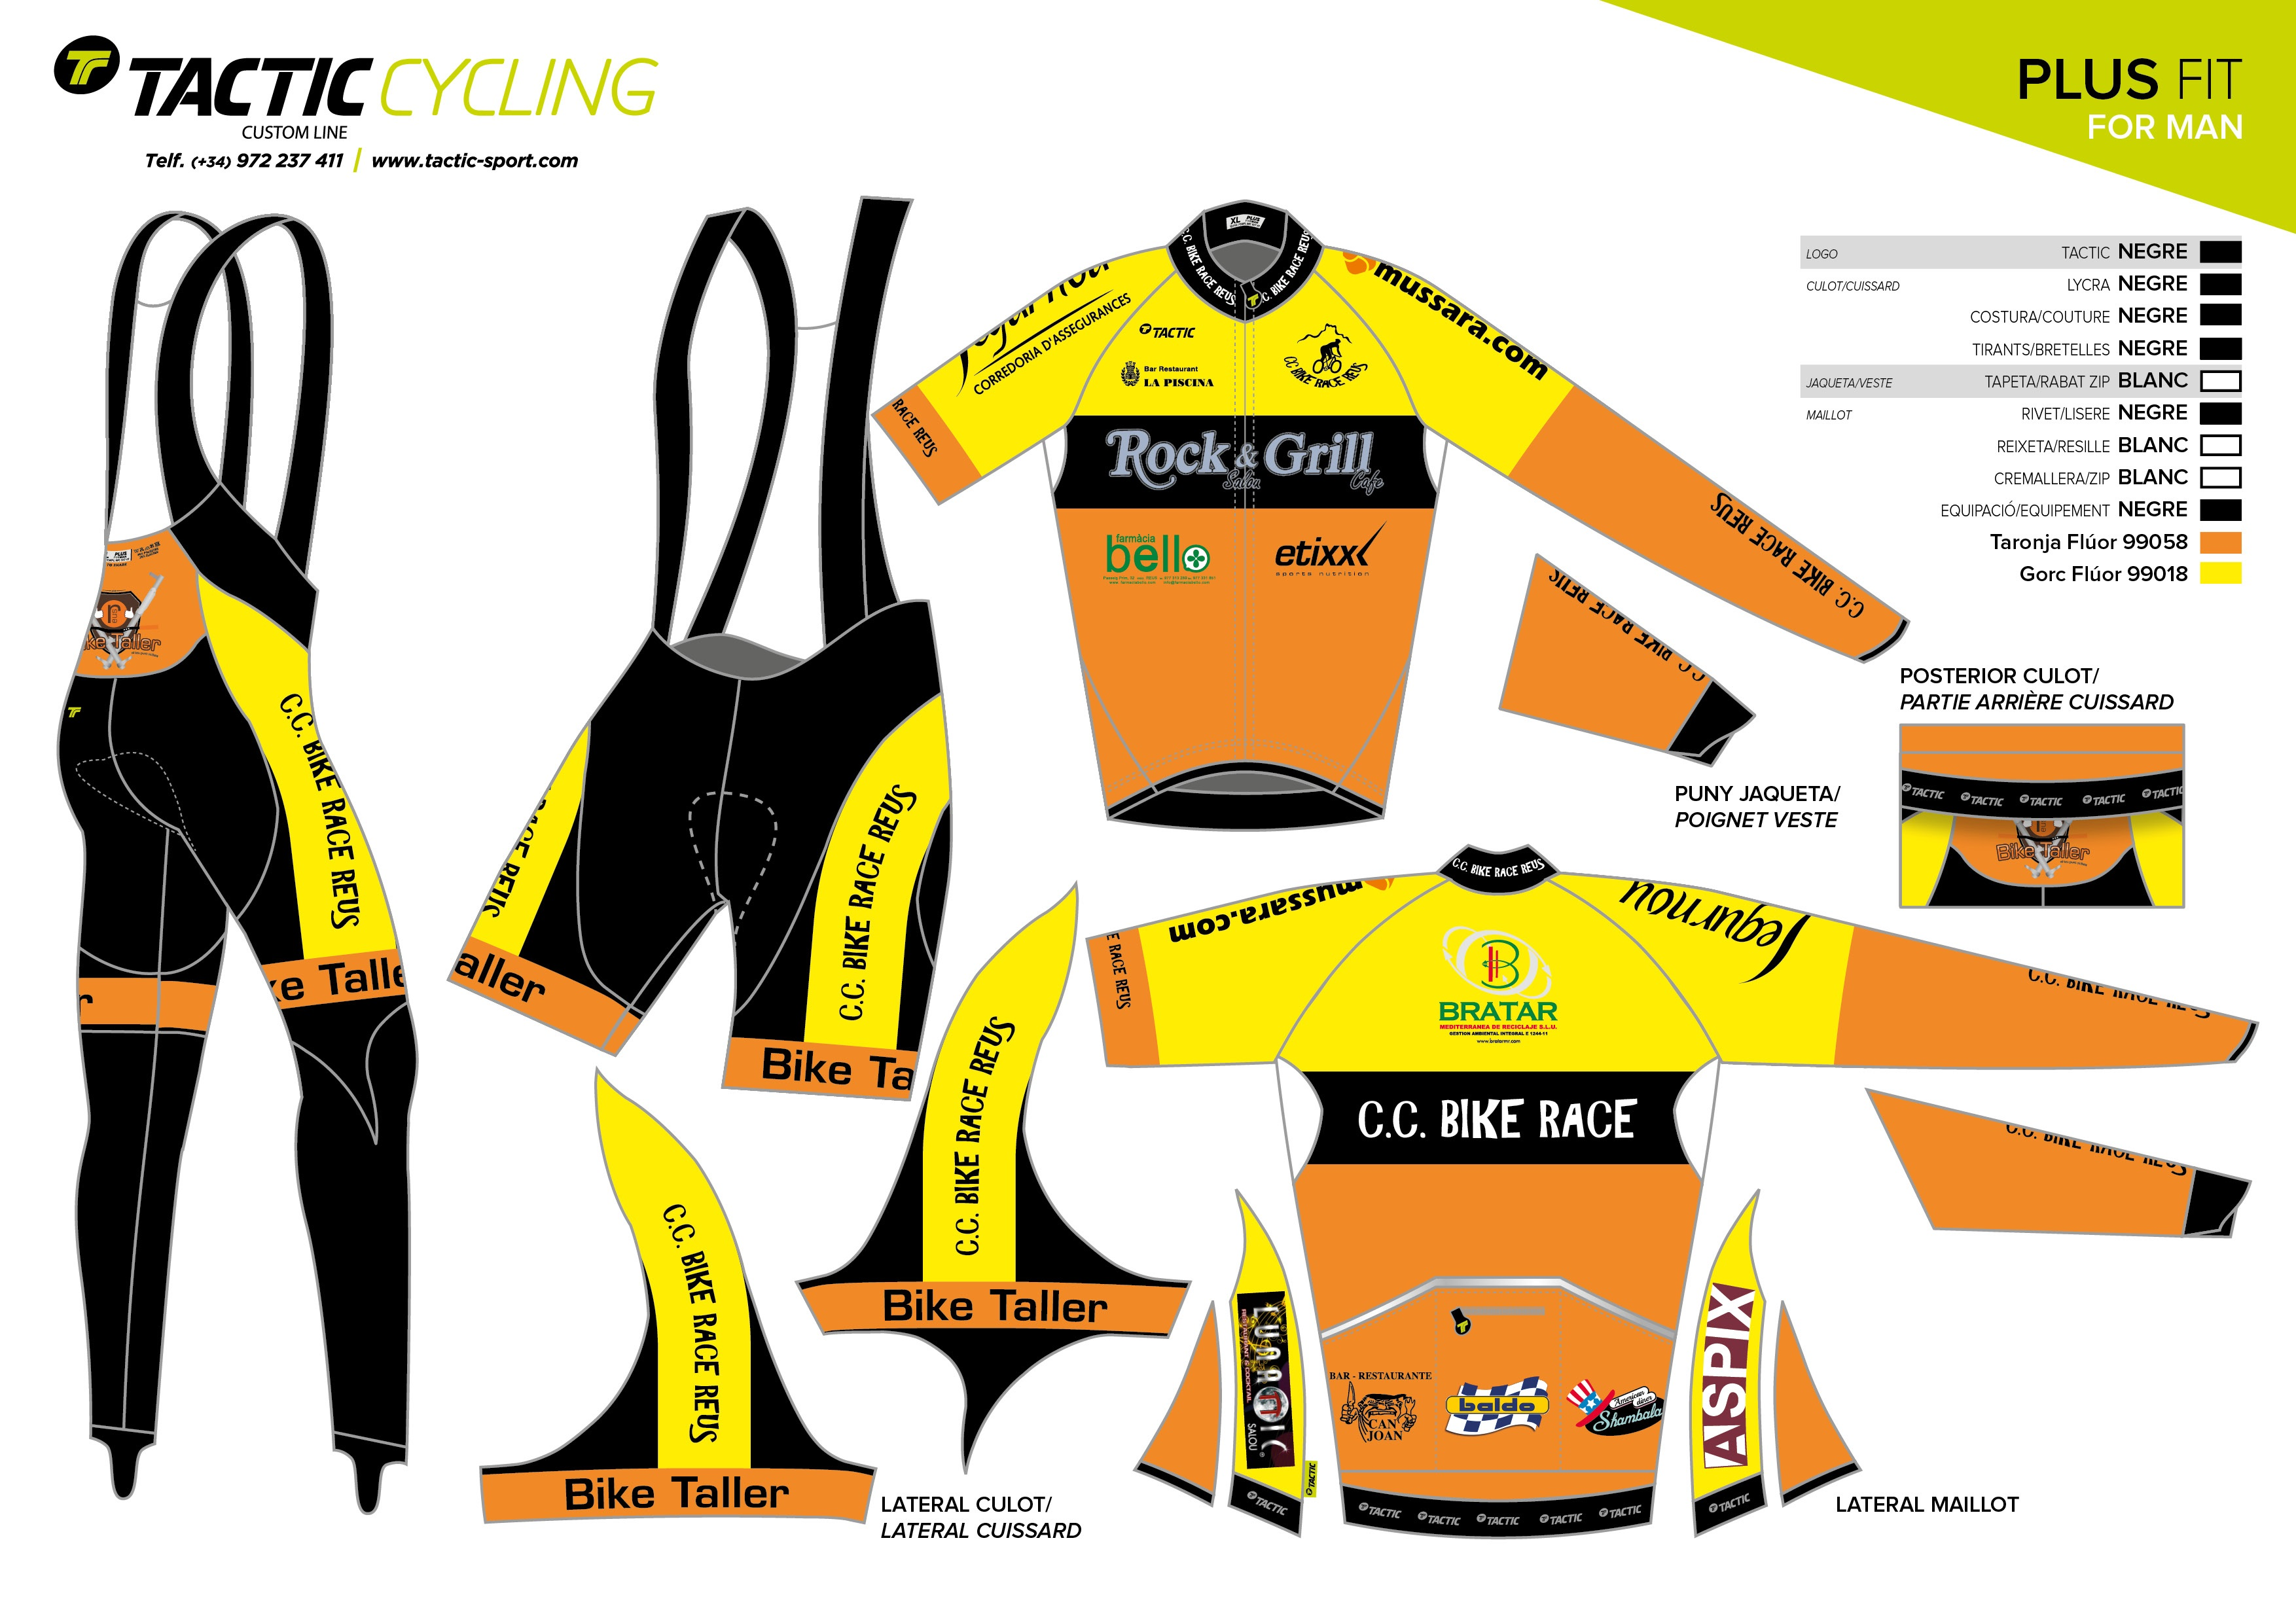 14431-c-c-bike-race-reus-22-web